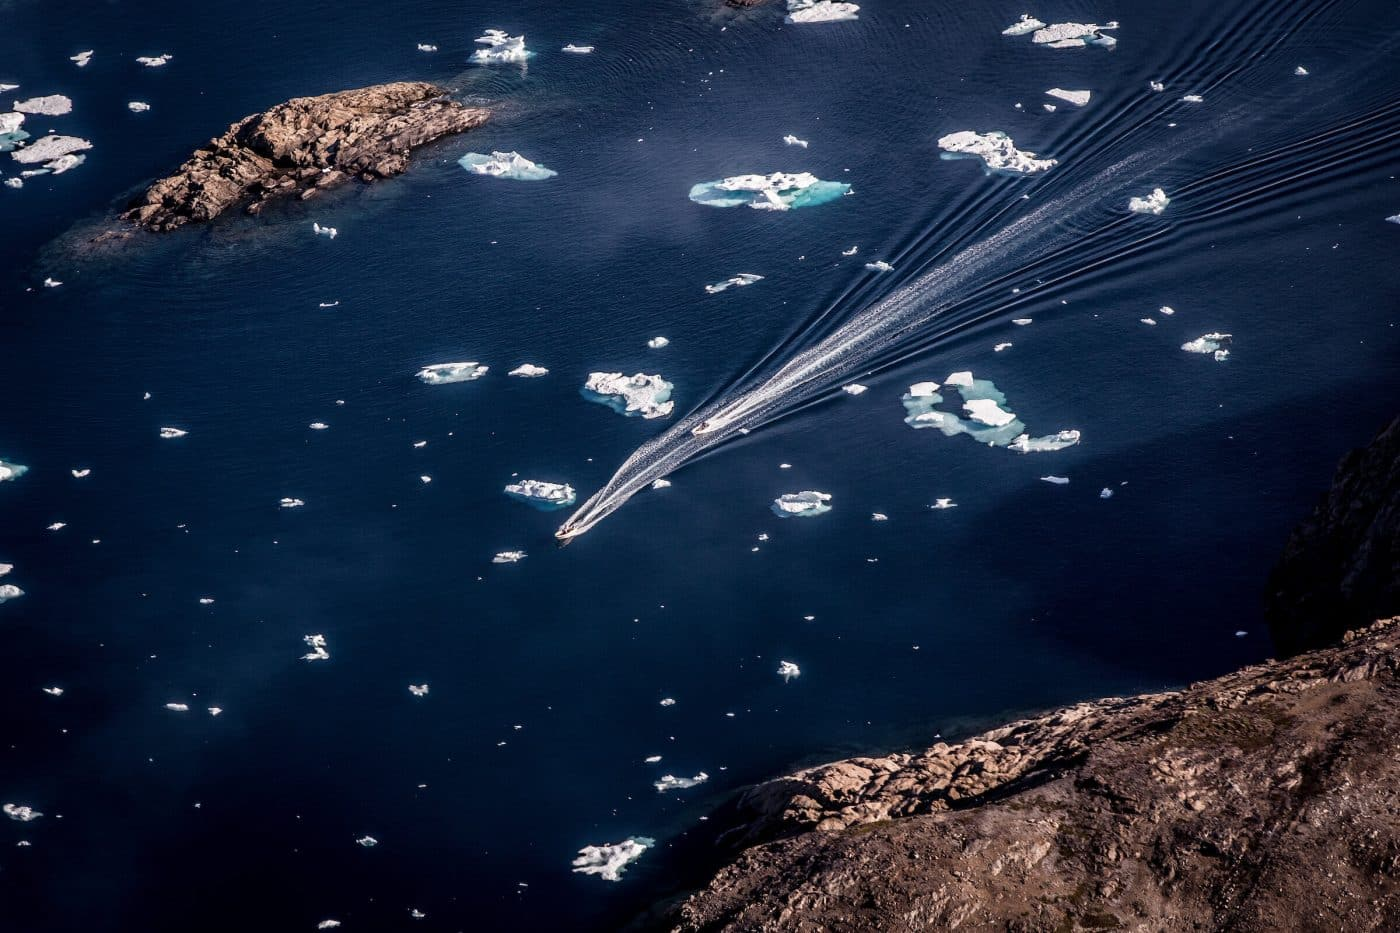 Two small boats along the coastline in East Greenland near Tasiilaq. By Mads Pihl